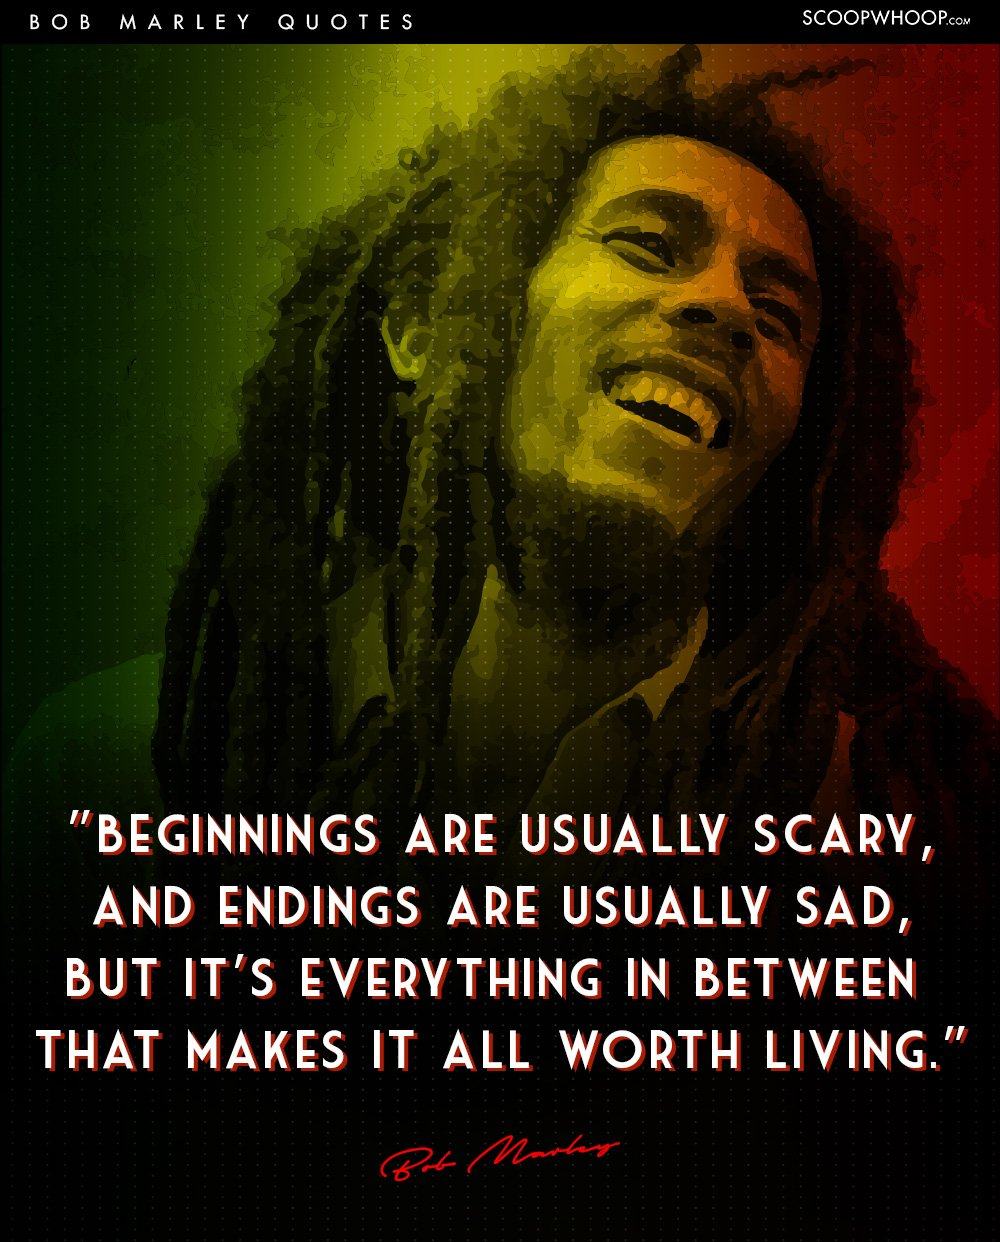 Today on his 72nd birth anniversary we bring you 15 thought provoking quotes by Bob Marley which are exactly the life lessons that we all need to learn